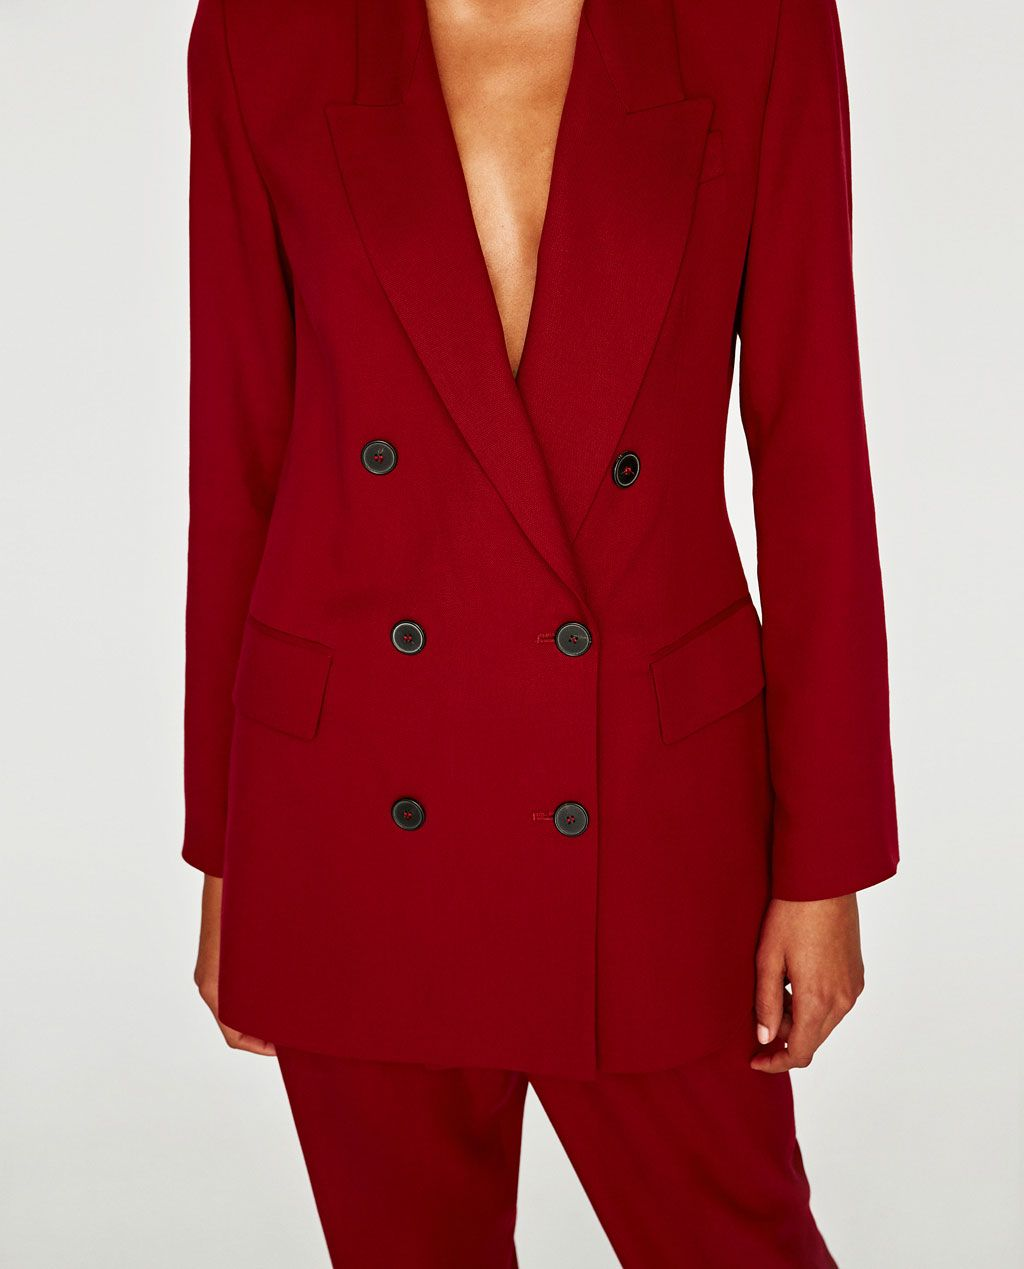 8a321b13 DOUBLE-BREASTED TAILORED JACKET-BLAZERS-WOMAN | ZARA United States ...